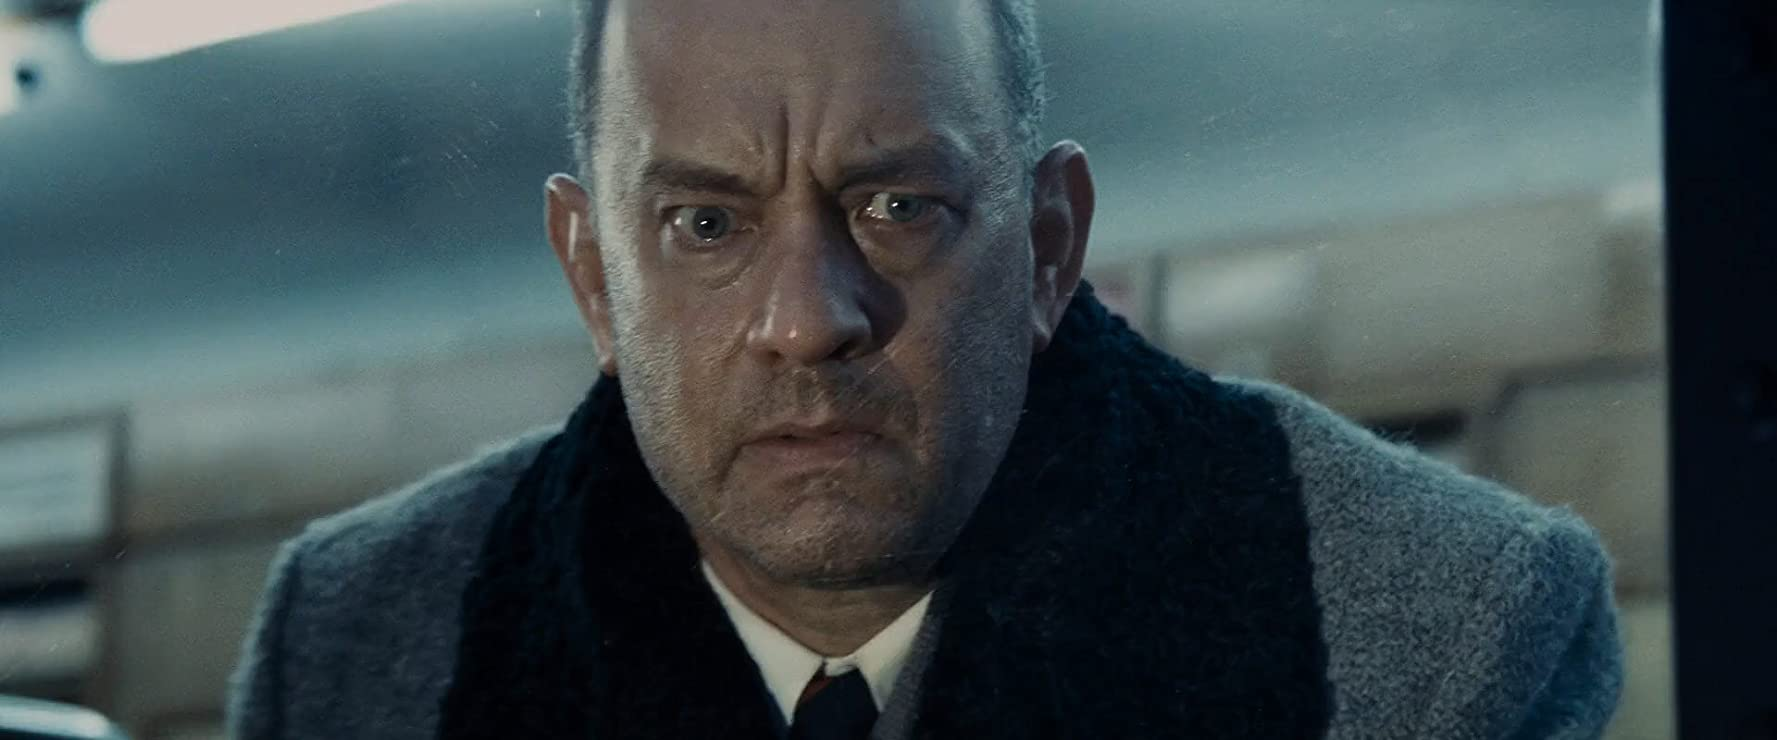 Tom Hanks in Bridge of Spies (2015)